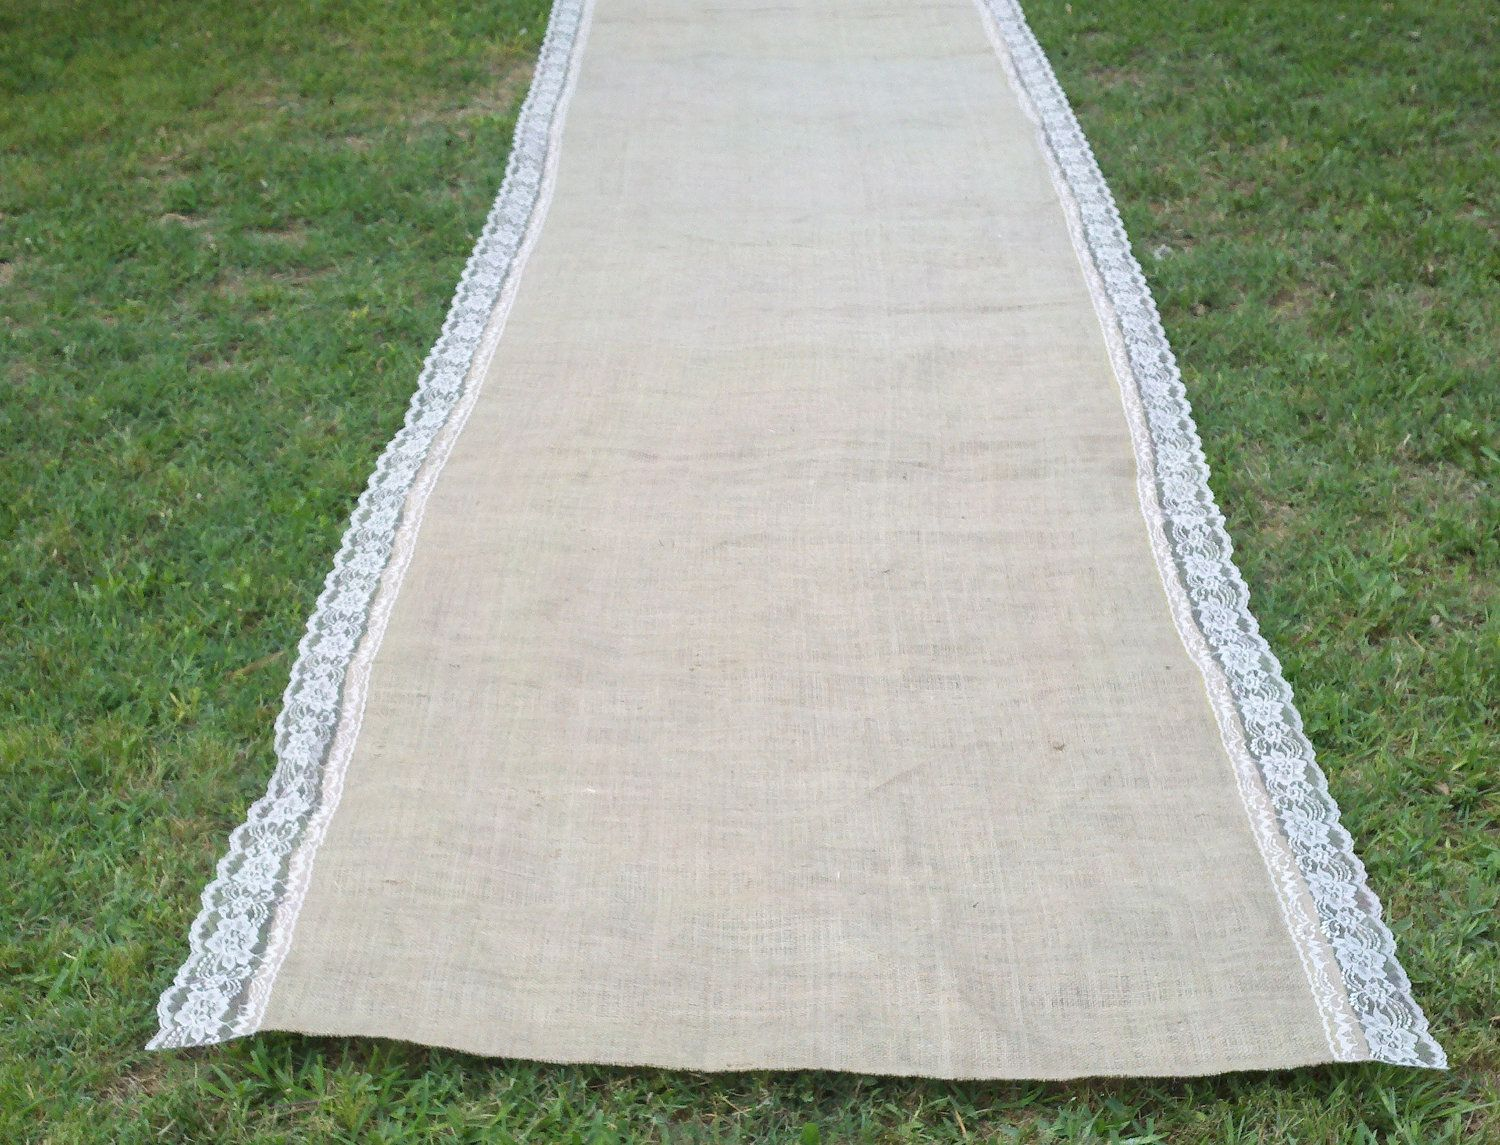 Burlap Aisle Runner With Natural Lace I Think We Could Make This Always And Forever On One